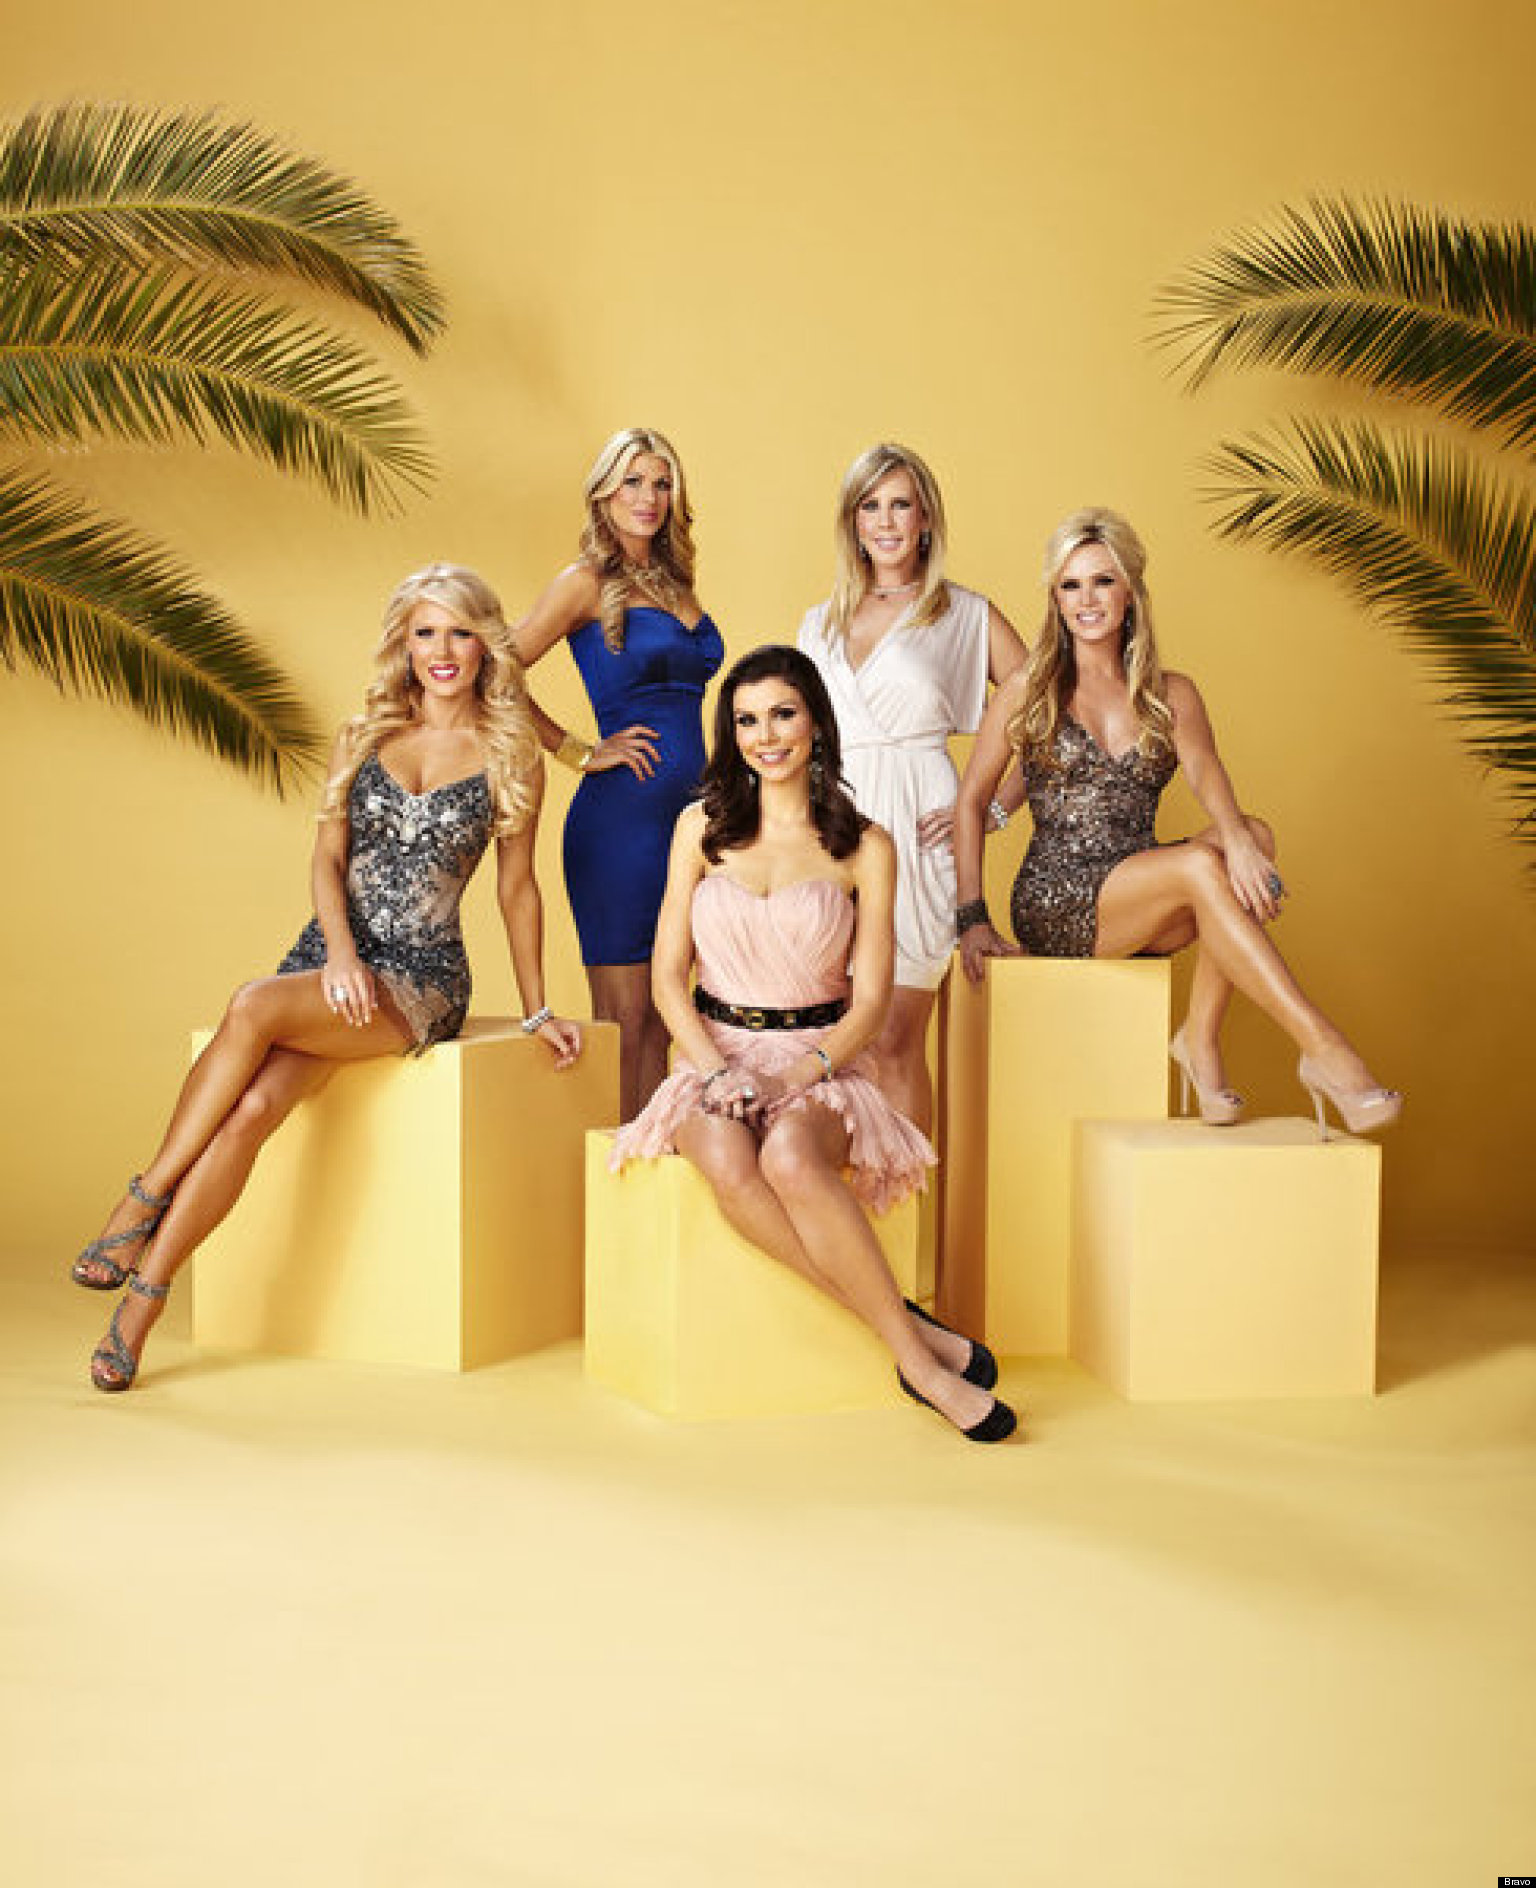 39 the real housewives of orange county 39 recap skiing hot for Real houswives of orange county